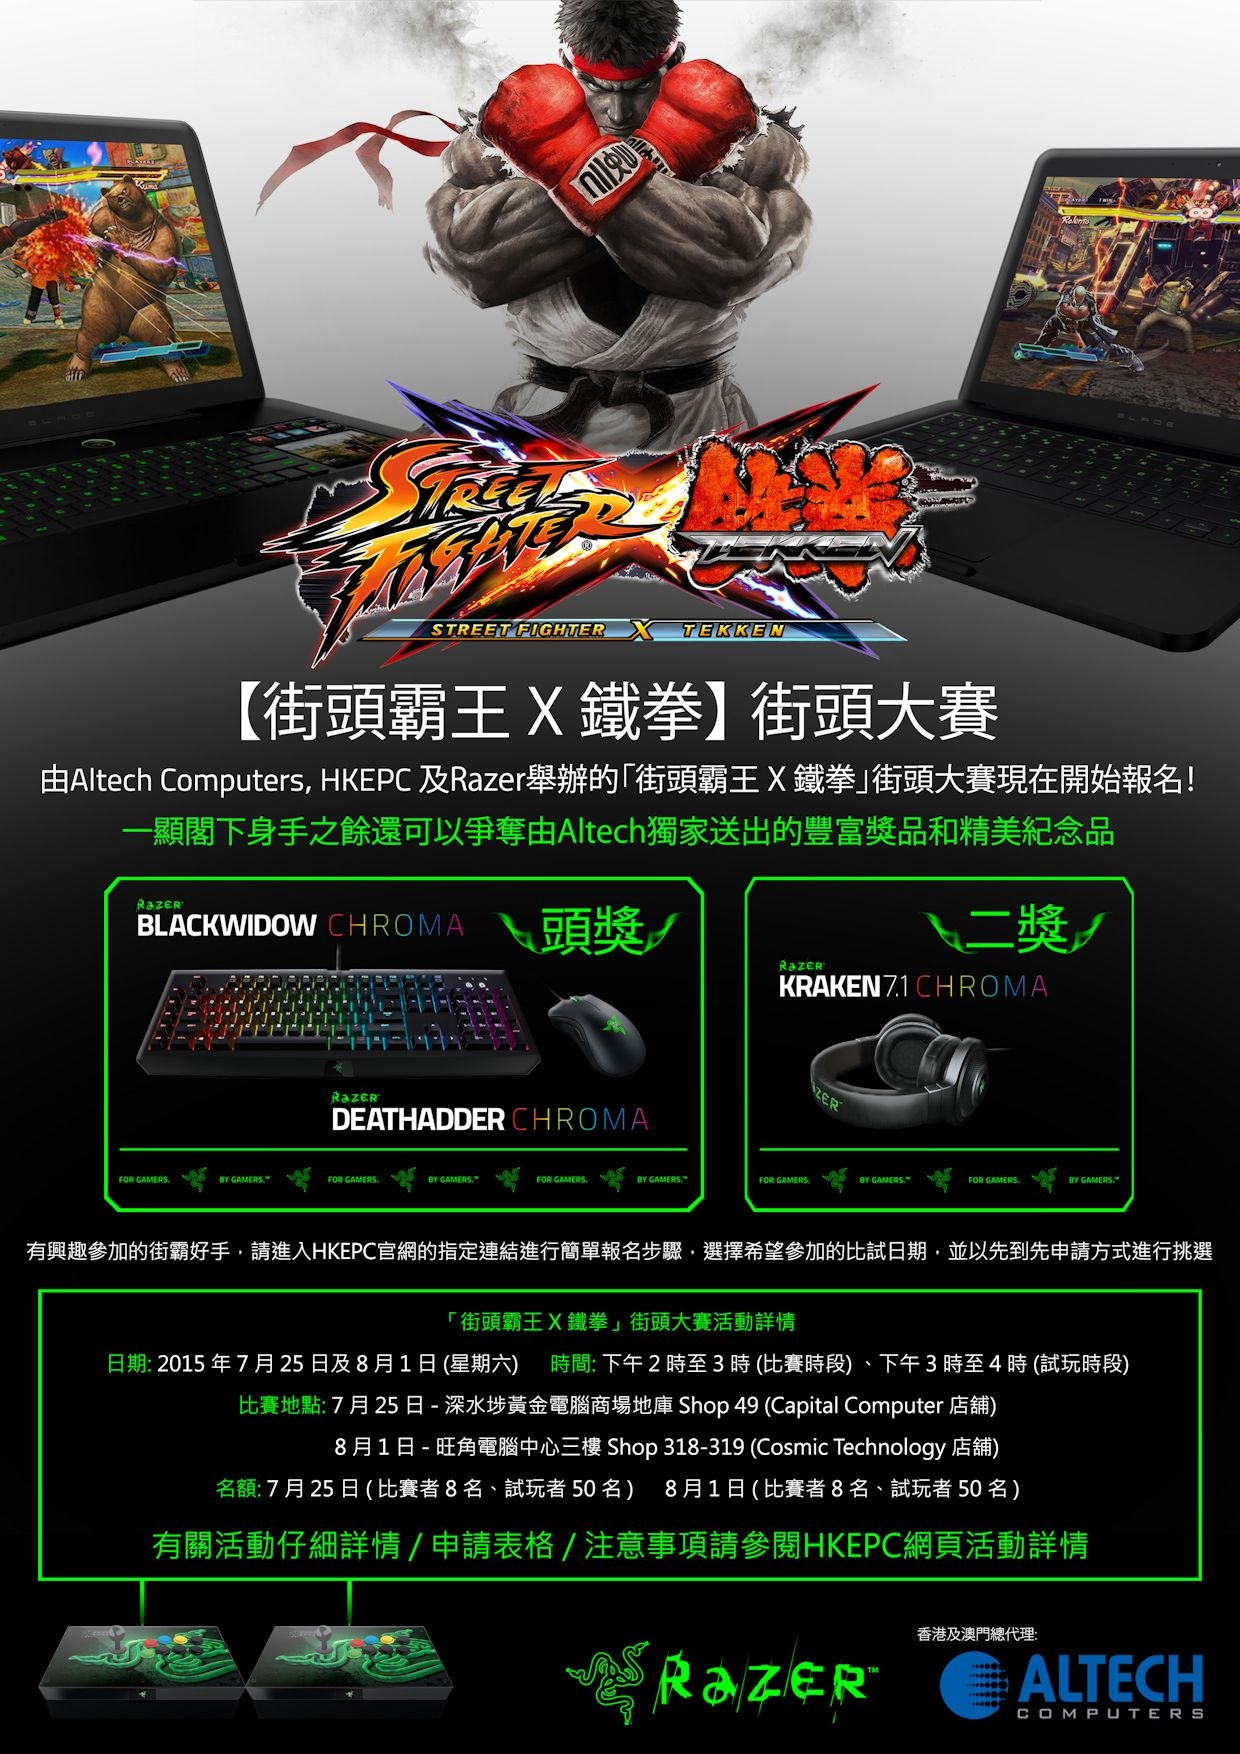 Street Fighter X Tekken Event